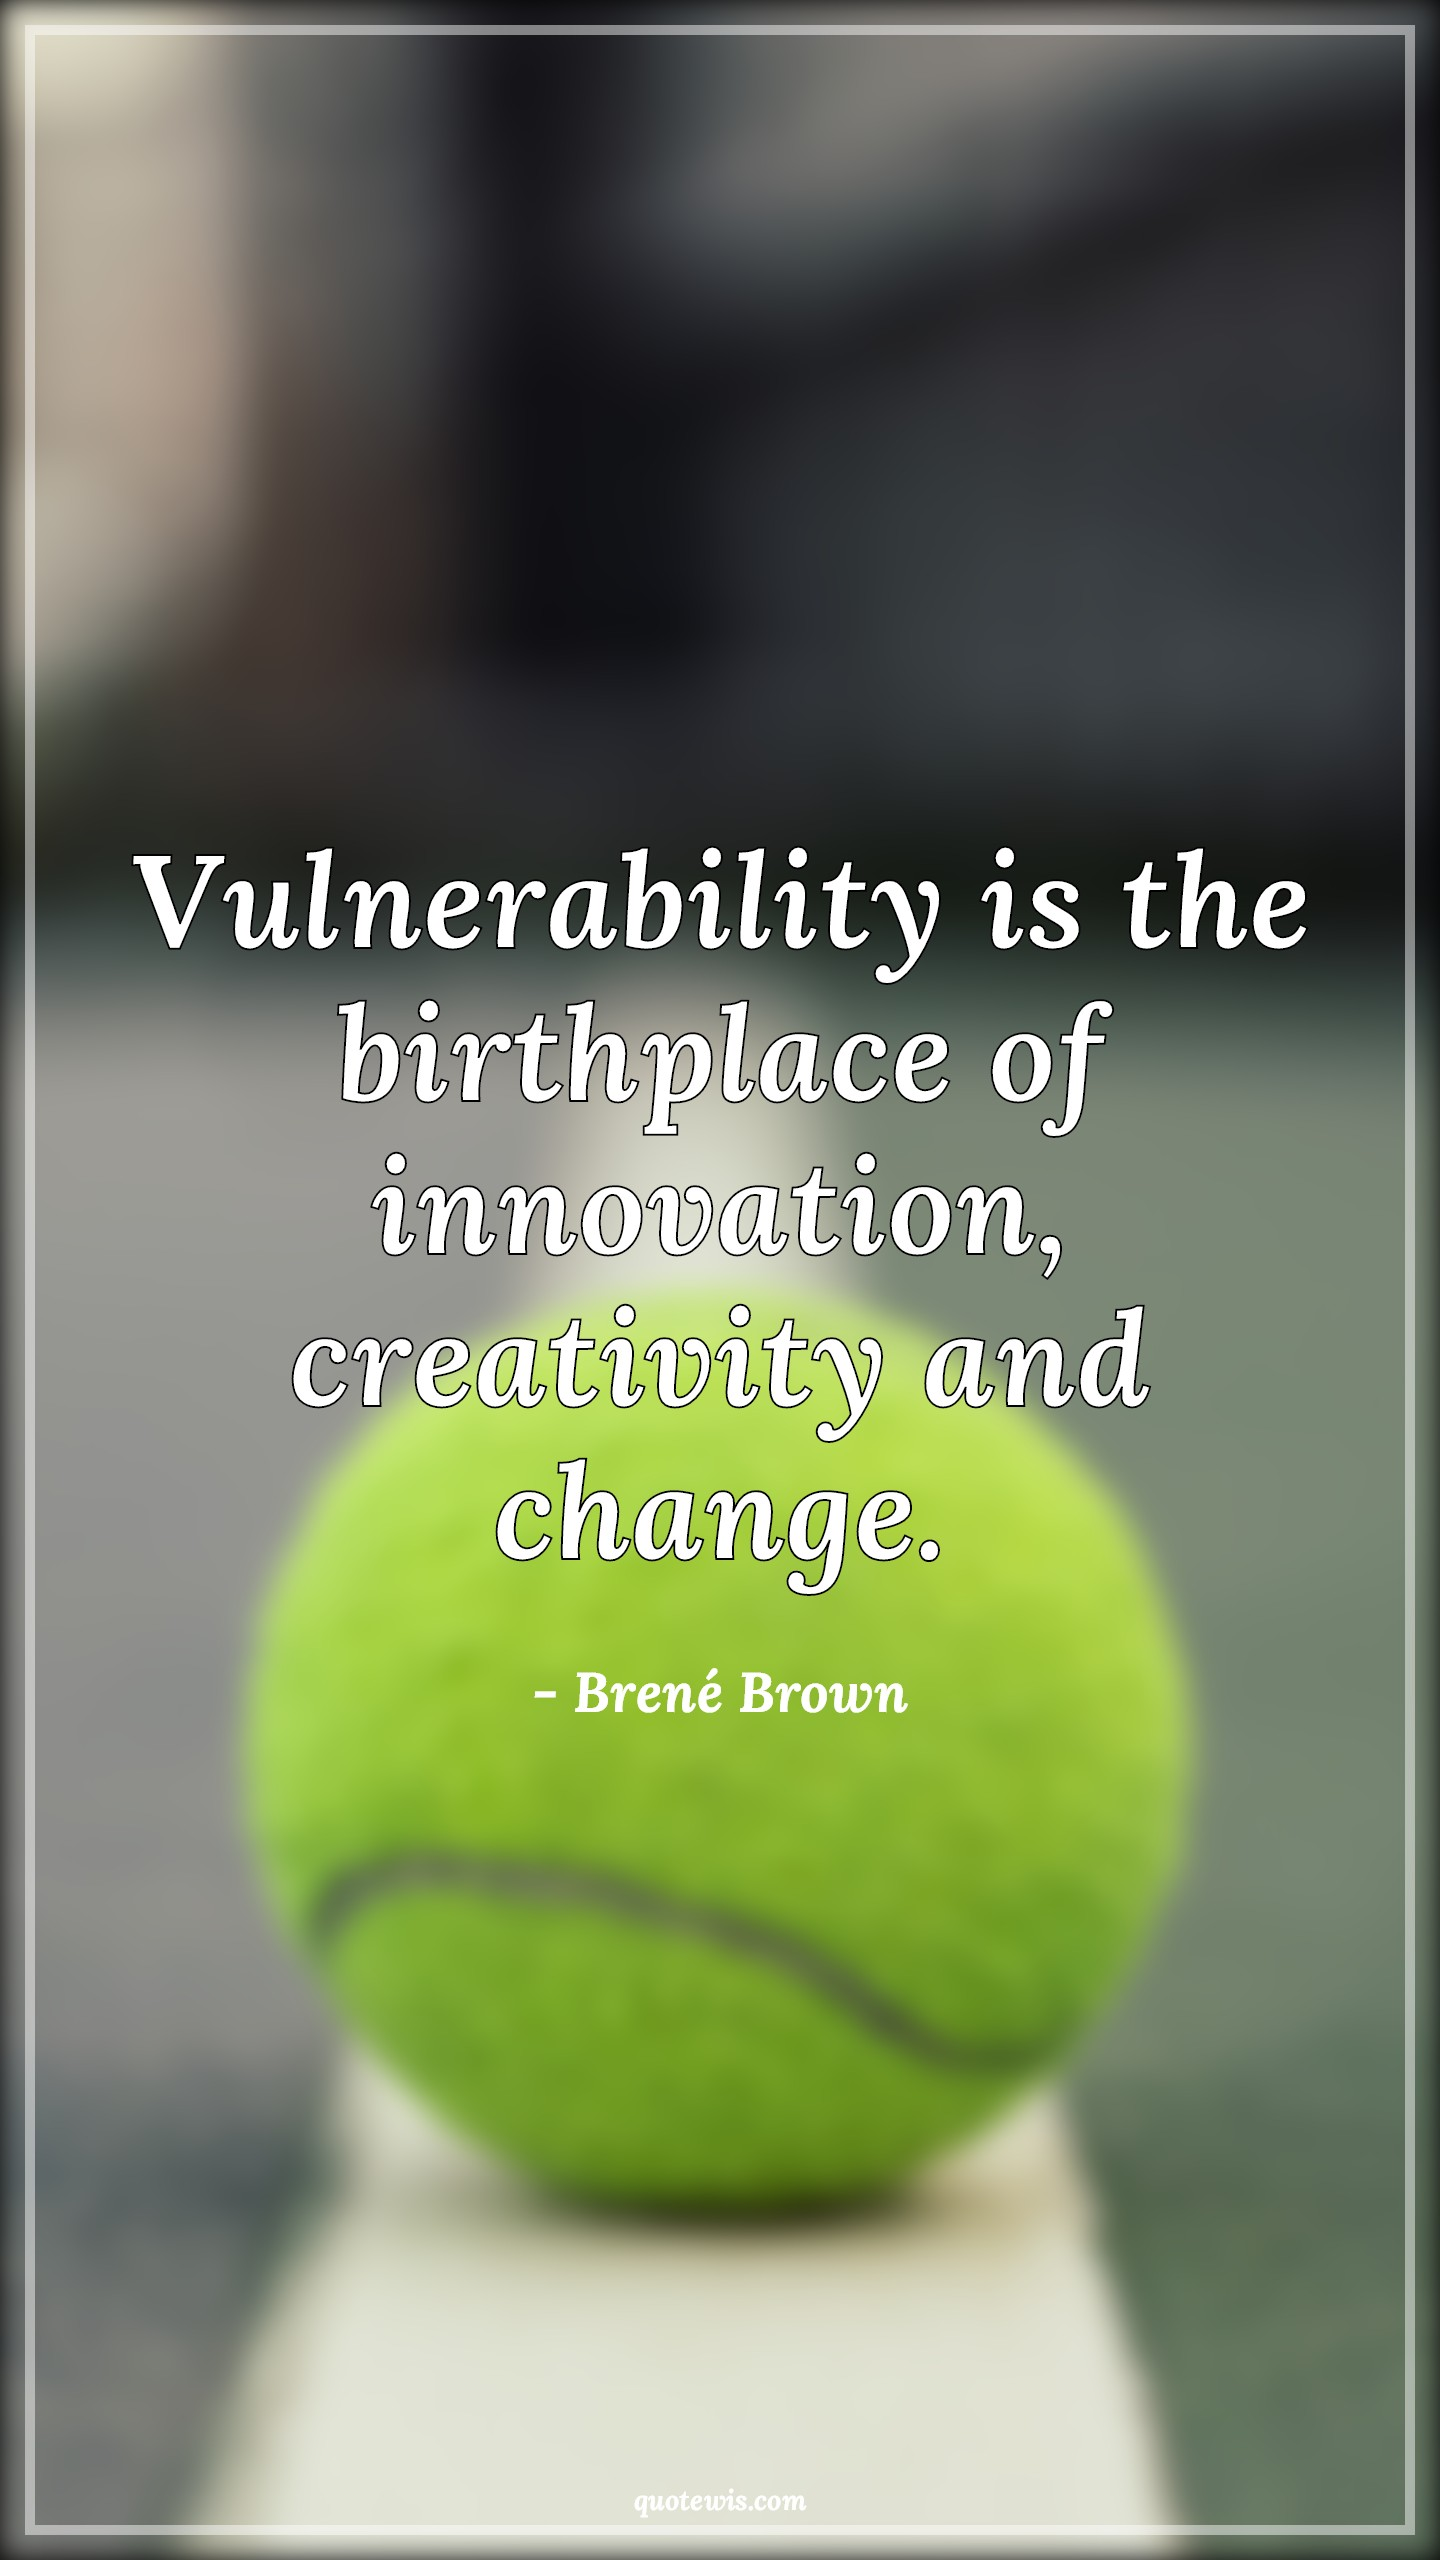 Vulnerability is the birthplace of innovation, creativity and change.